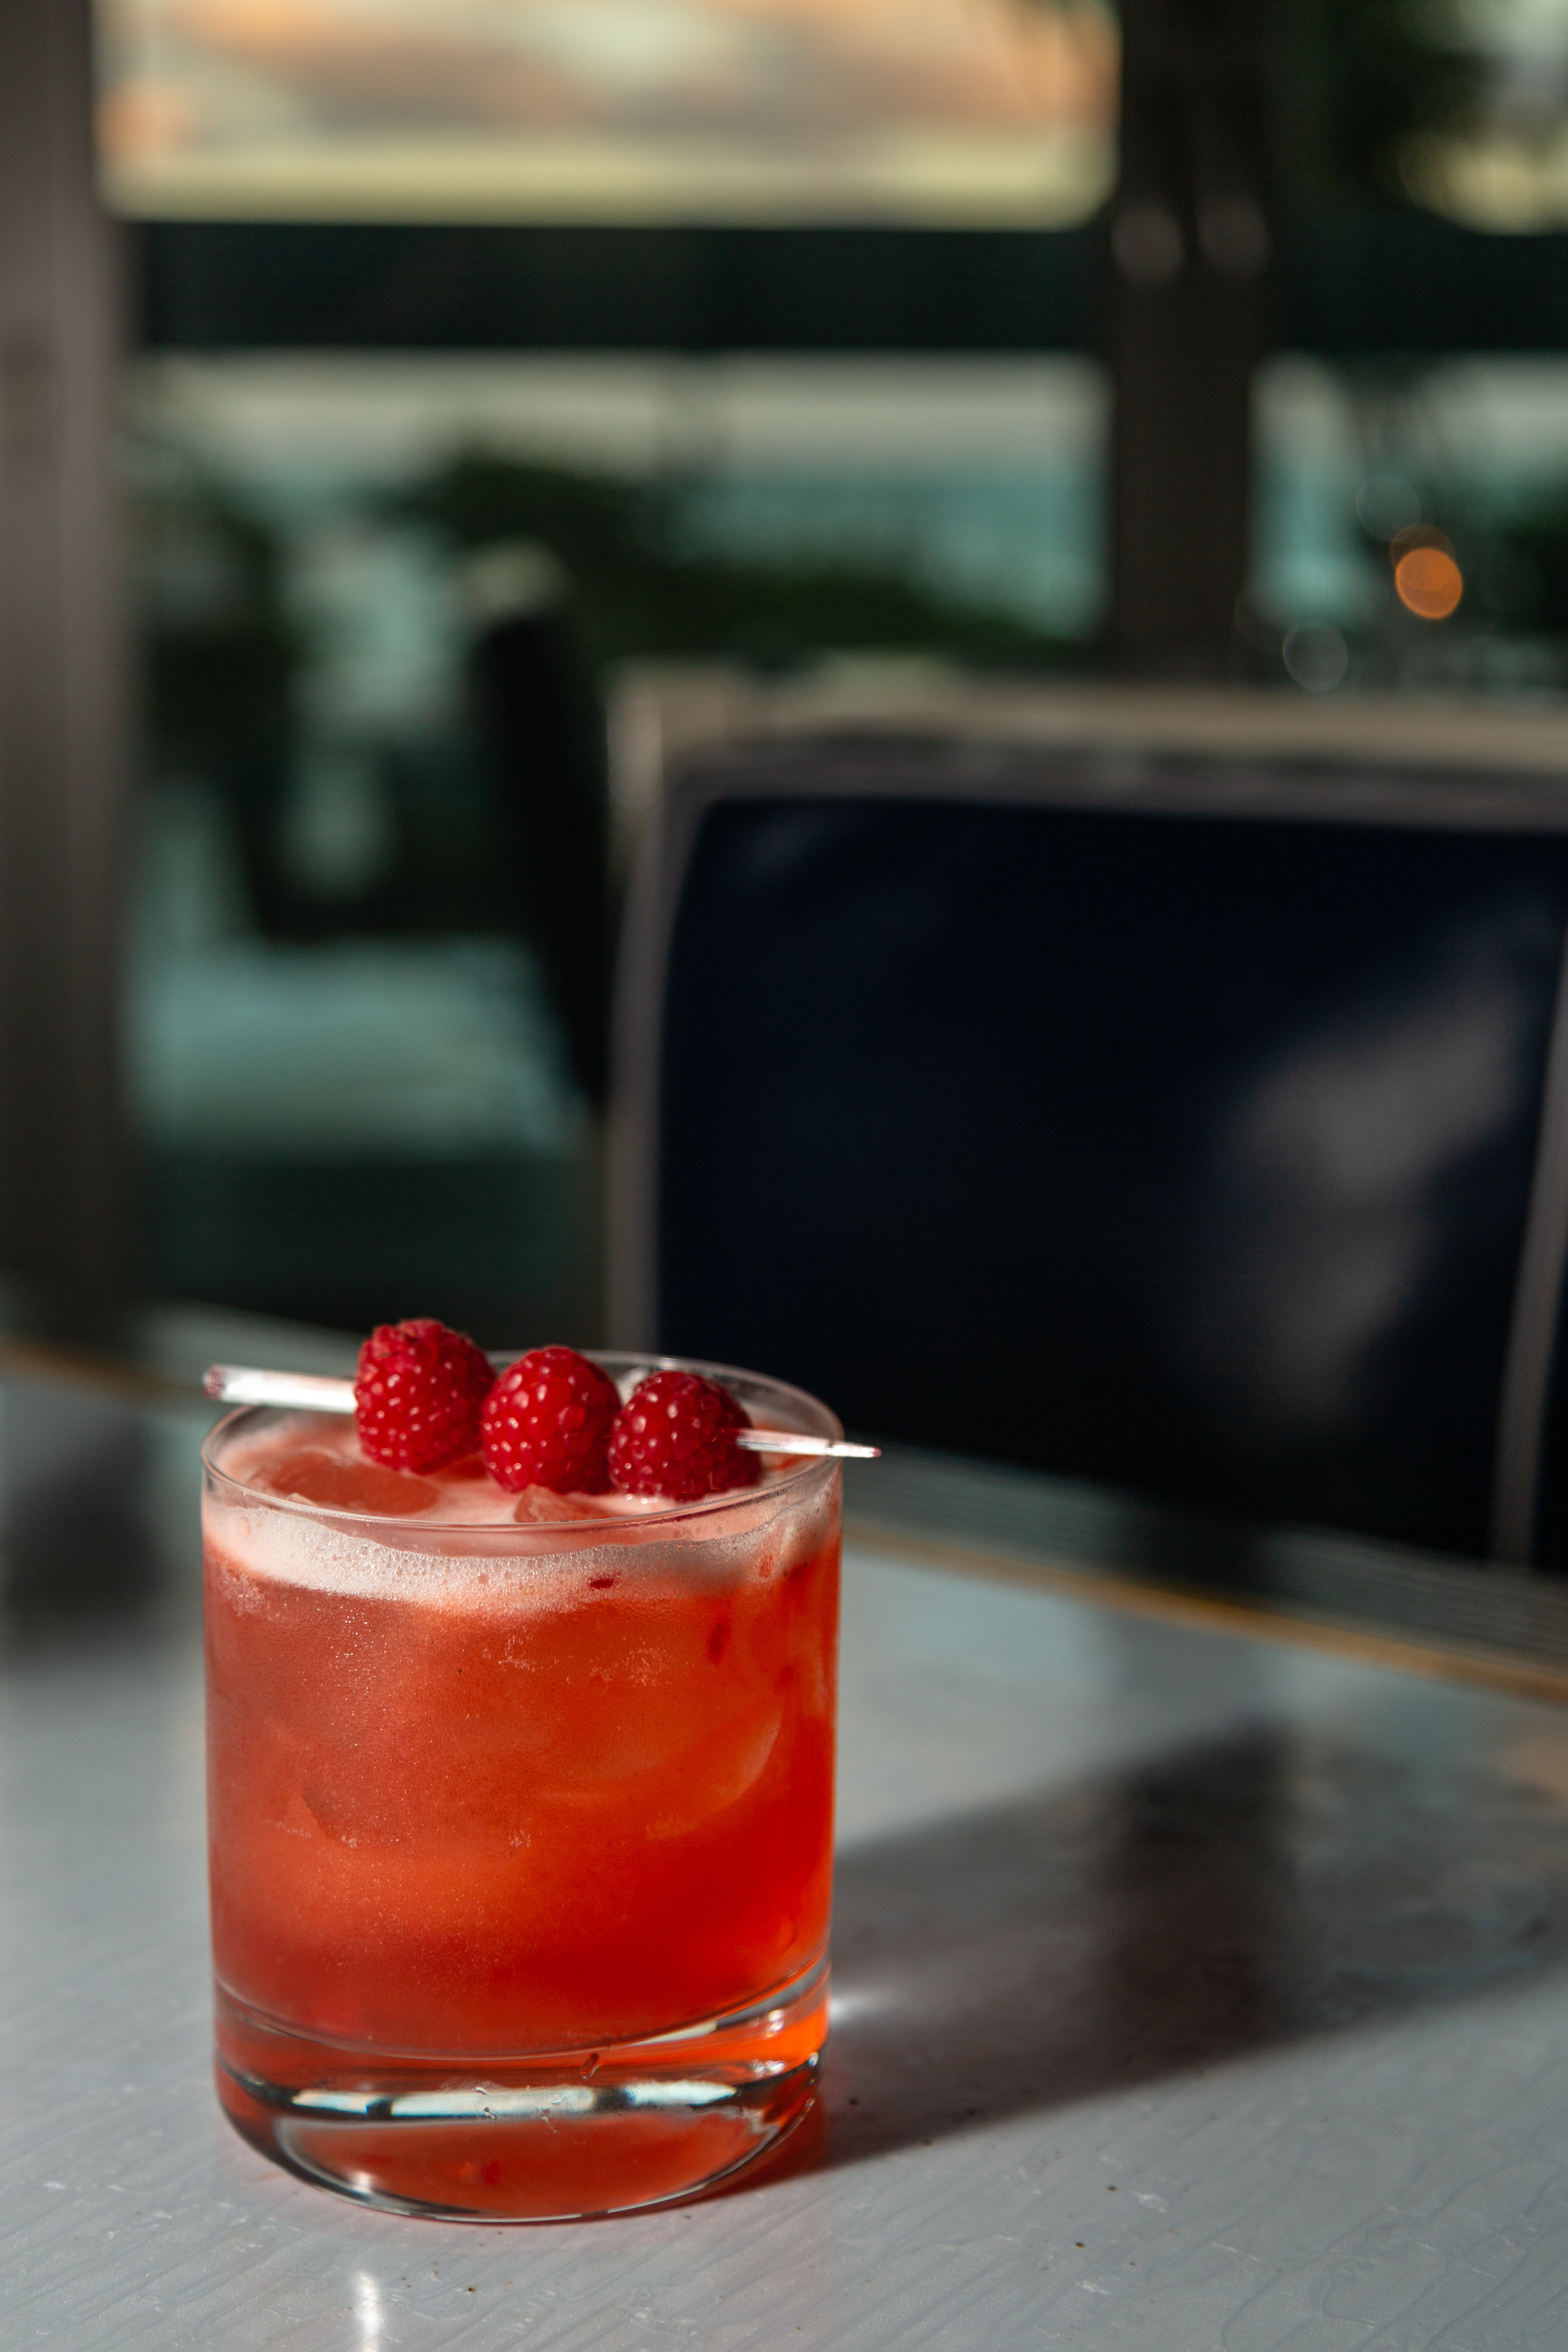 Scarpetta_Cocktails_Oct_2018-4.jpg